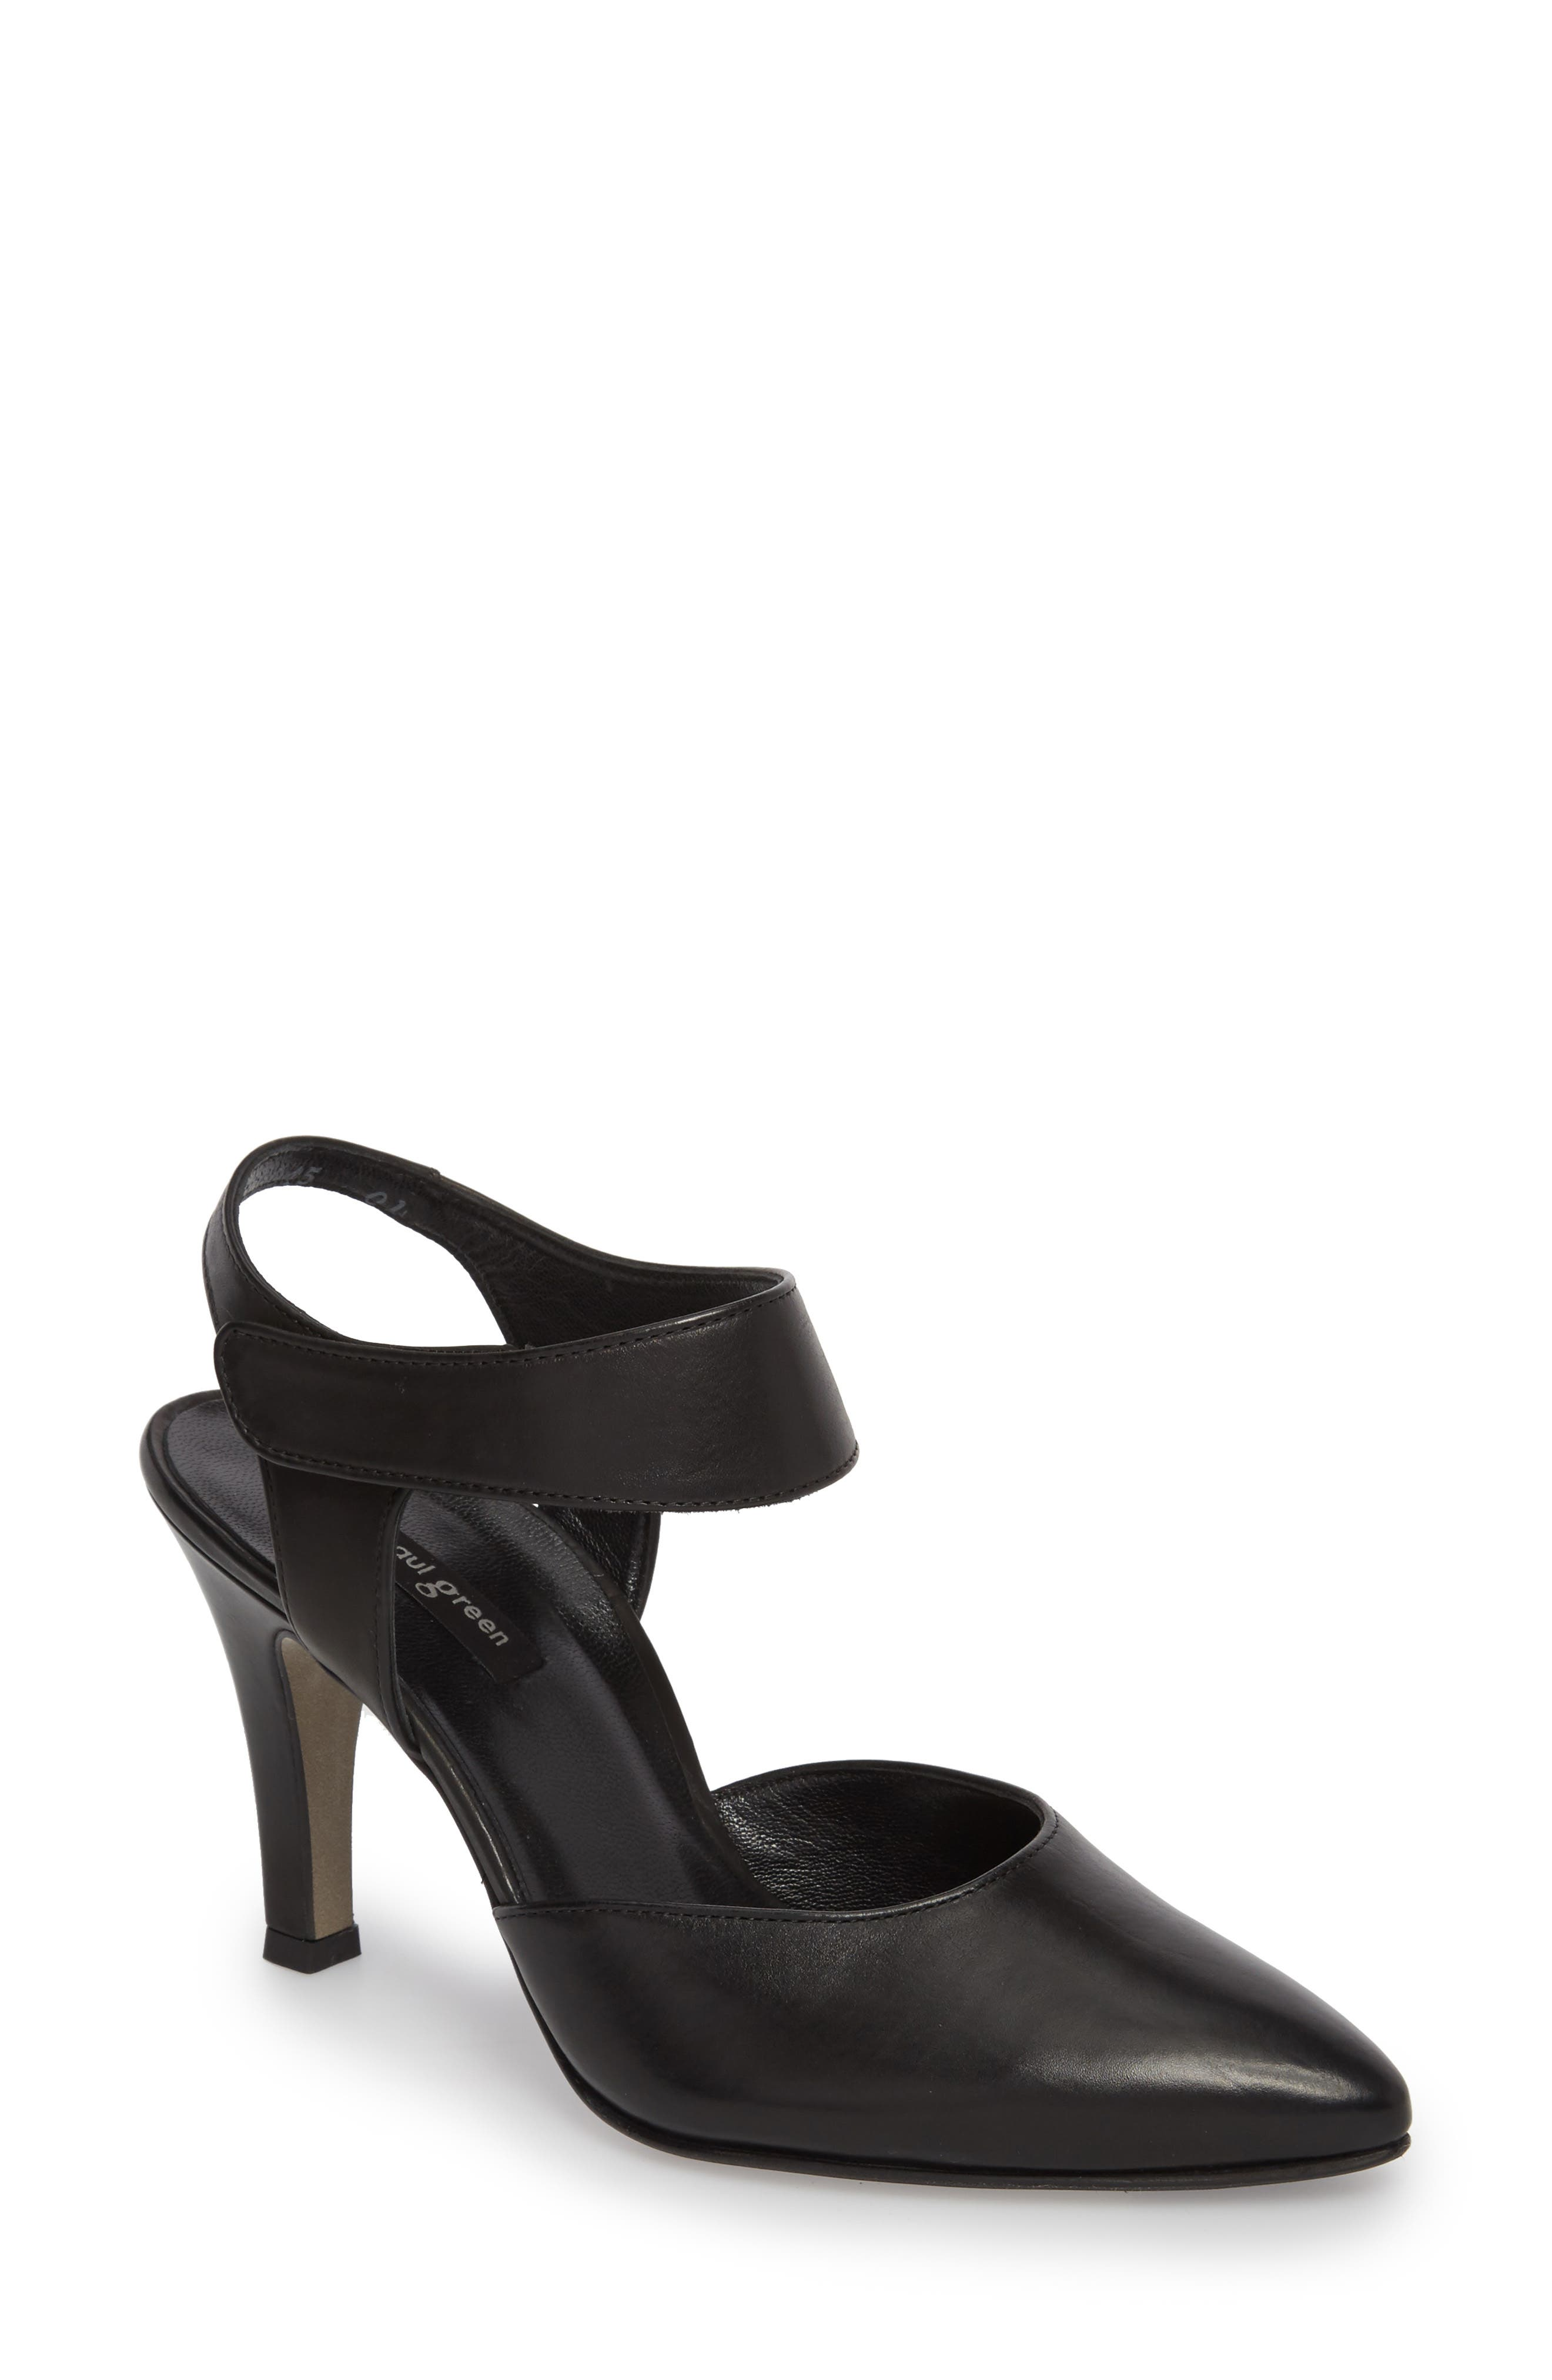 PAUL GREEN Nicolette Pointy Toe Pump, Main, color, BLACK LEATHER